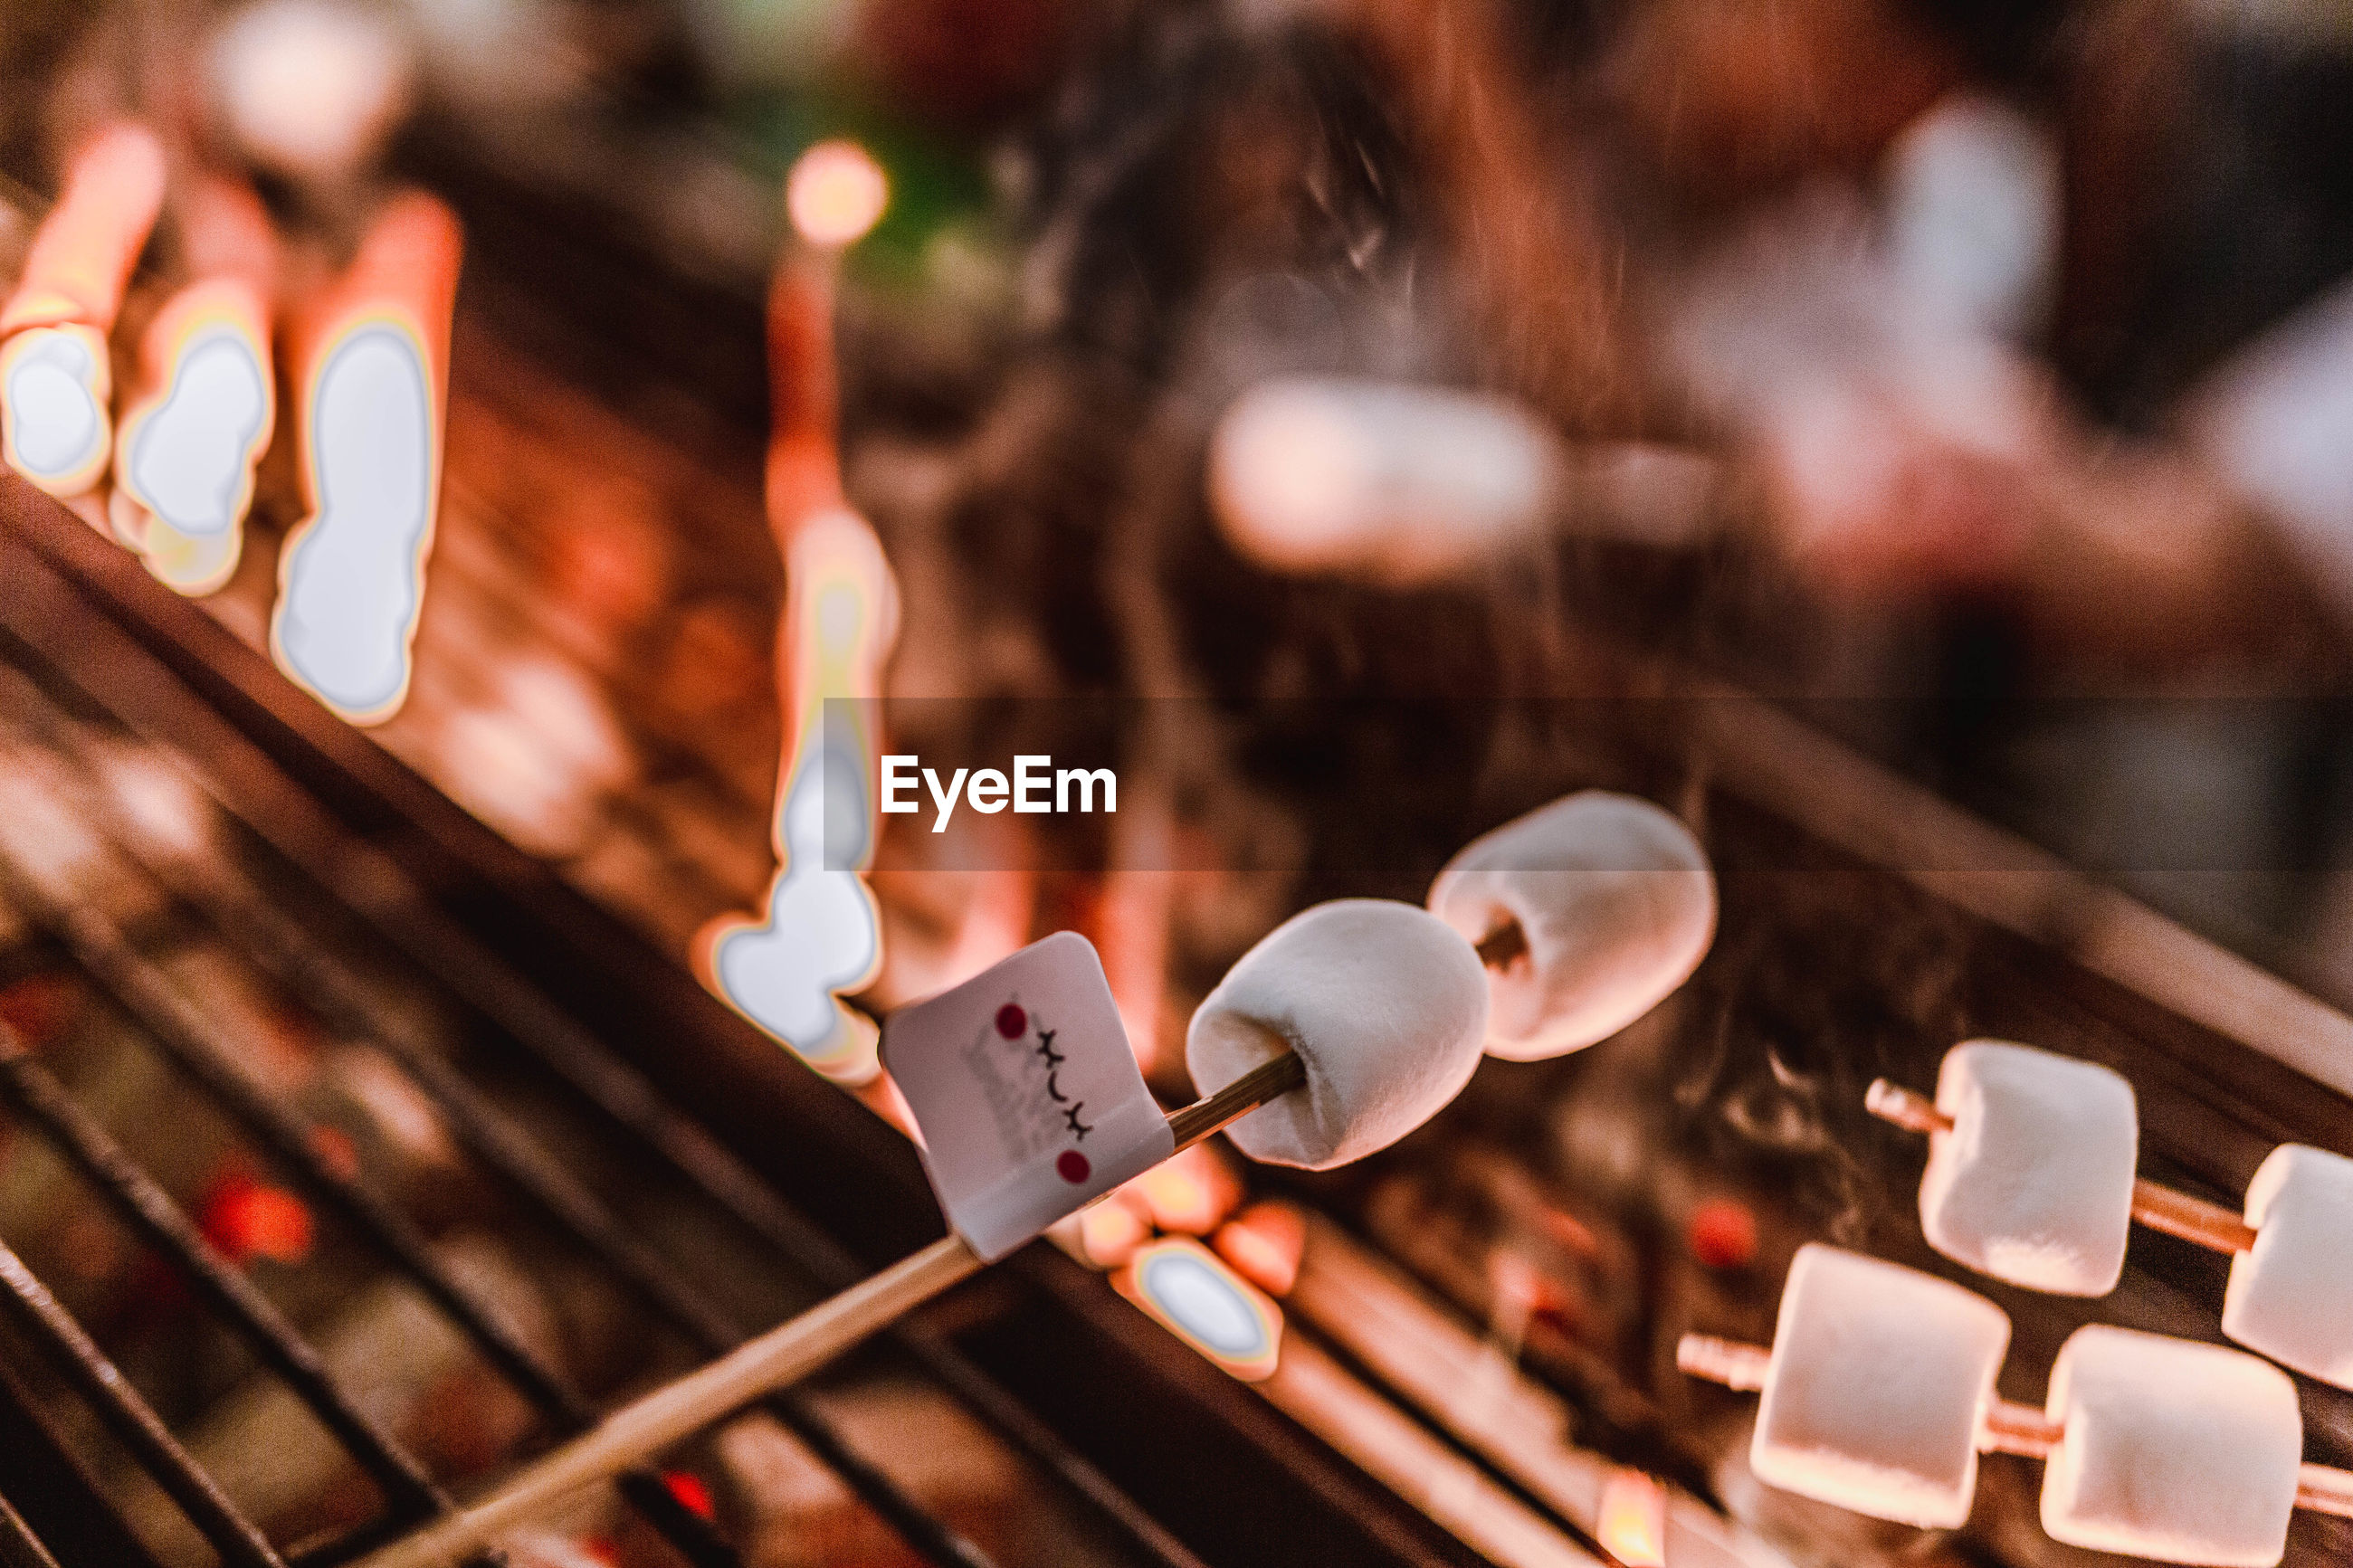 Close-up of marshmallows roasting on barbecue